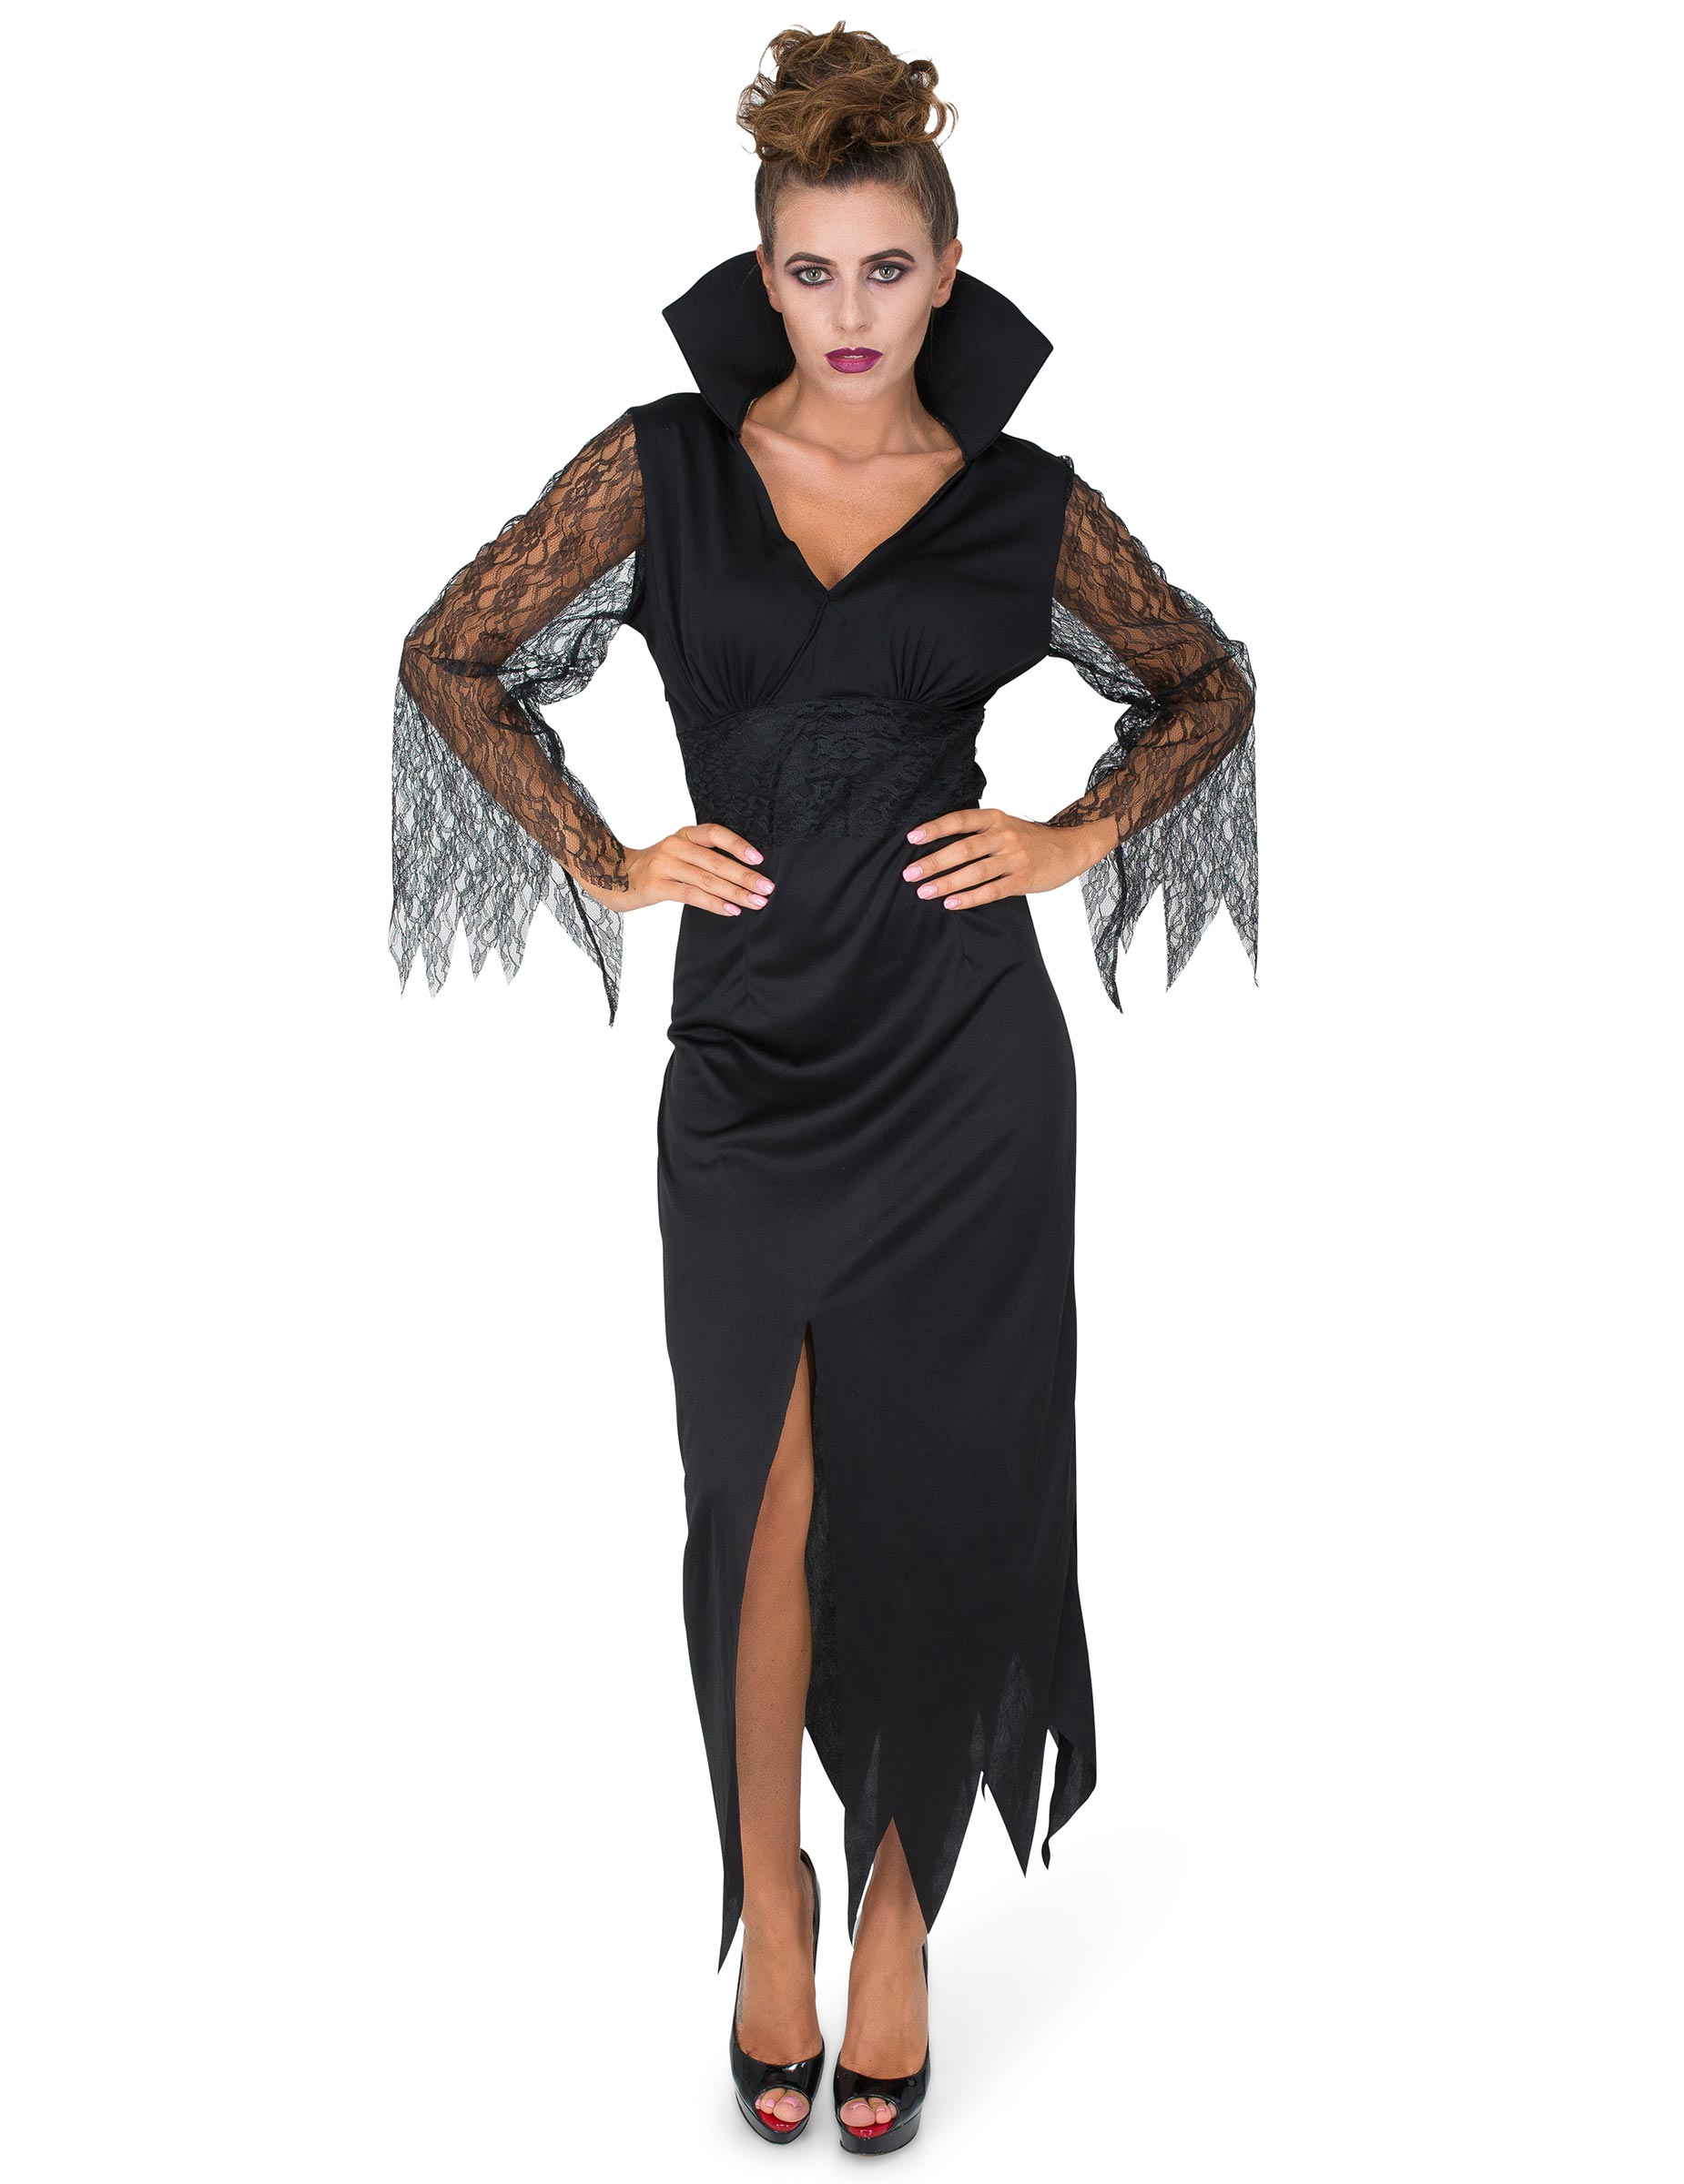 Costume strega in pizzo nero da donna Halloween su VegaooParty ... 83f39caa5430